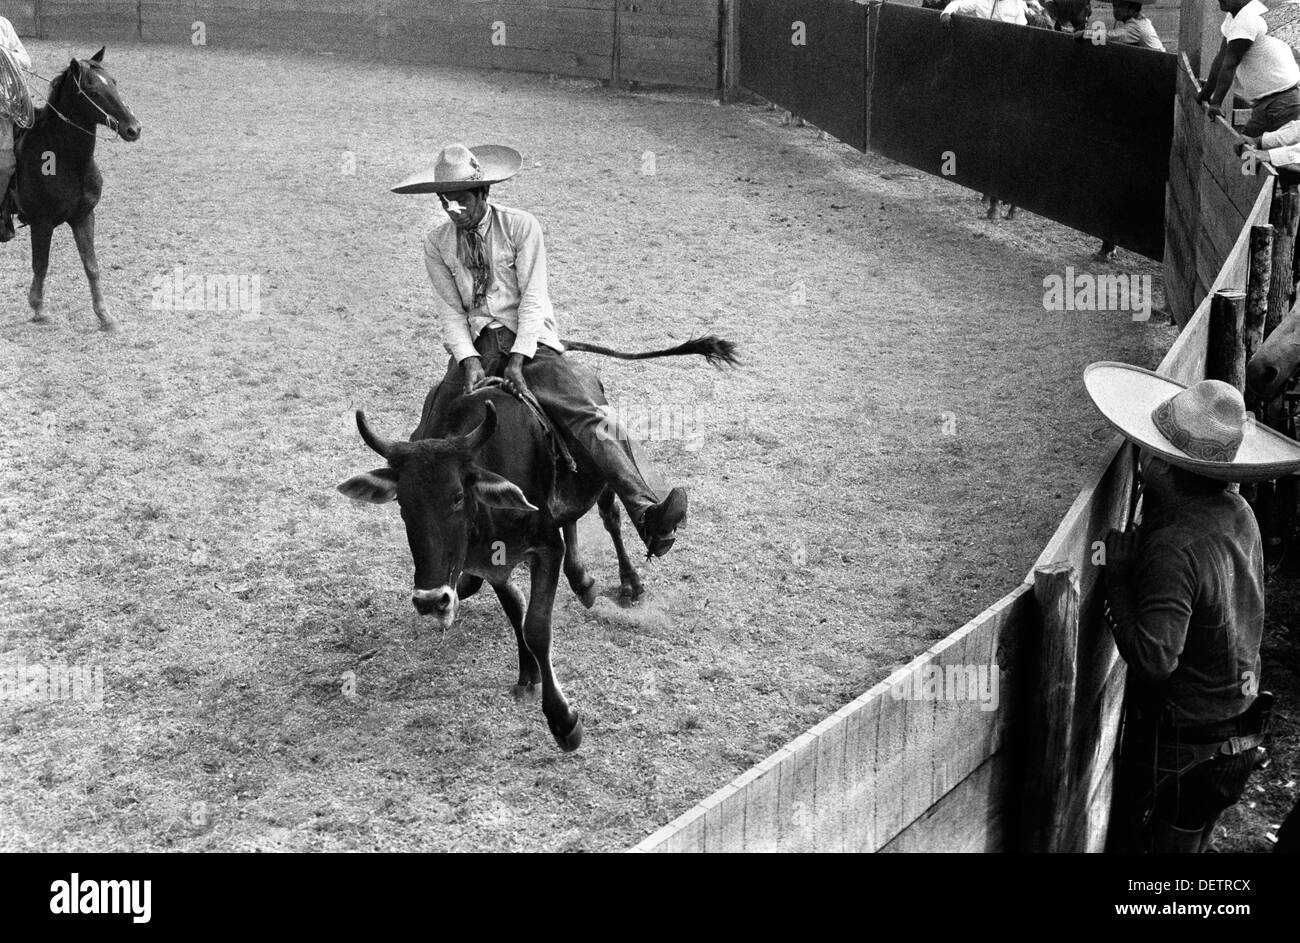 Rodeo Mexico, cowboy known as Charros  riding a bull.  1973 HOMER SYKES - Stock Image